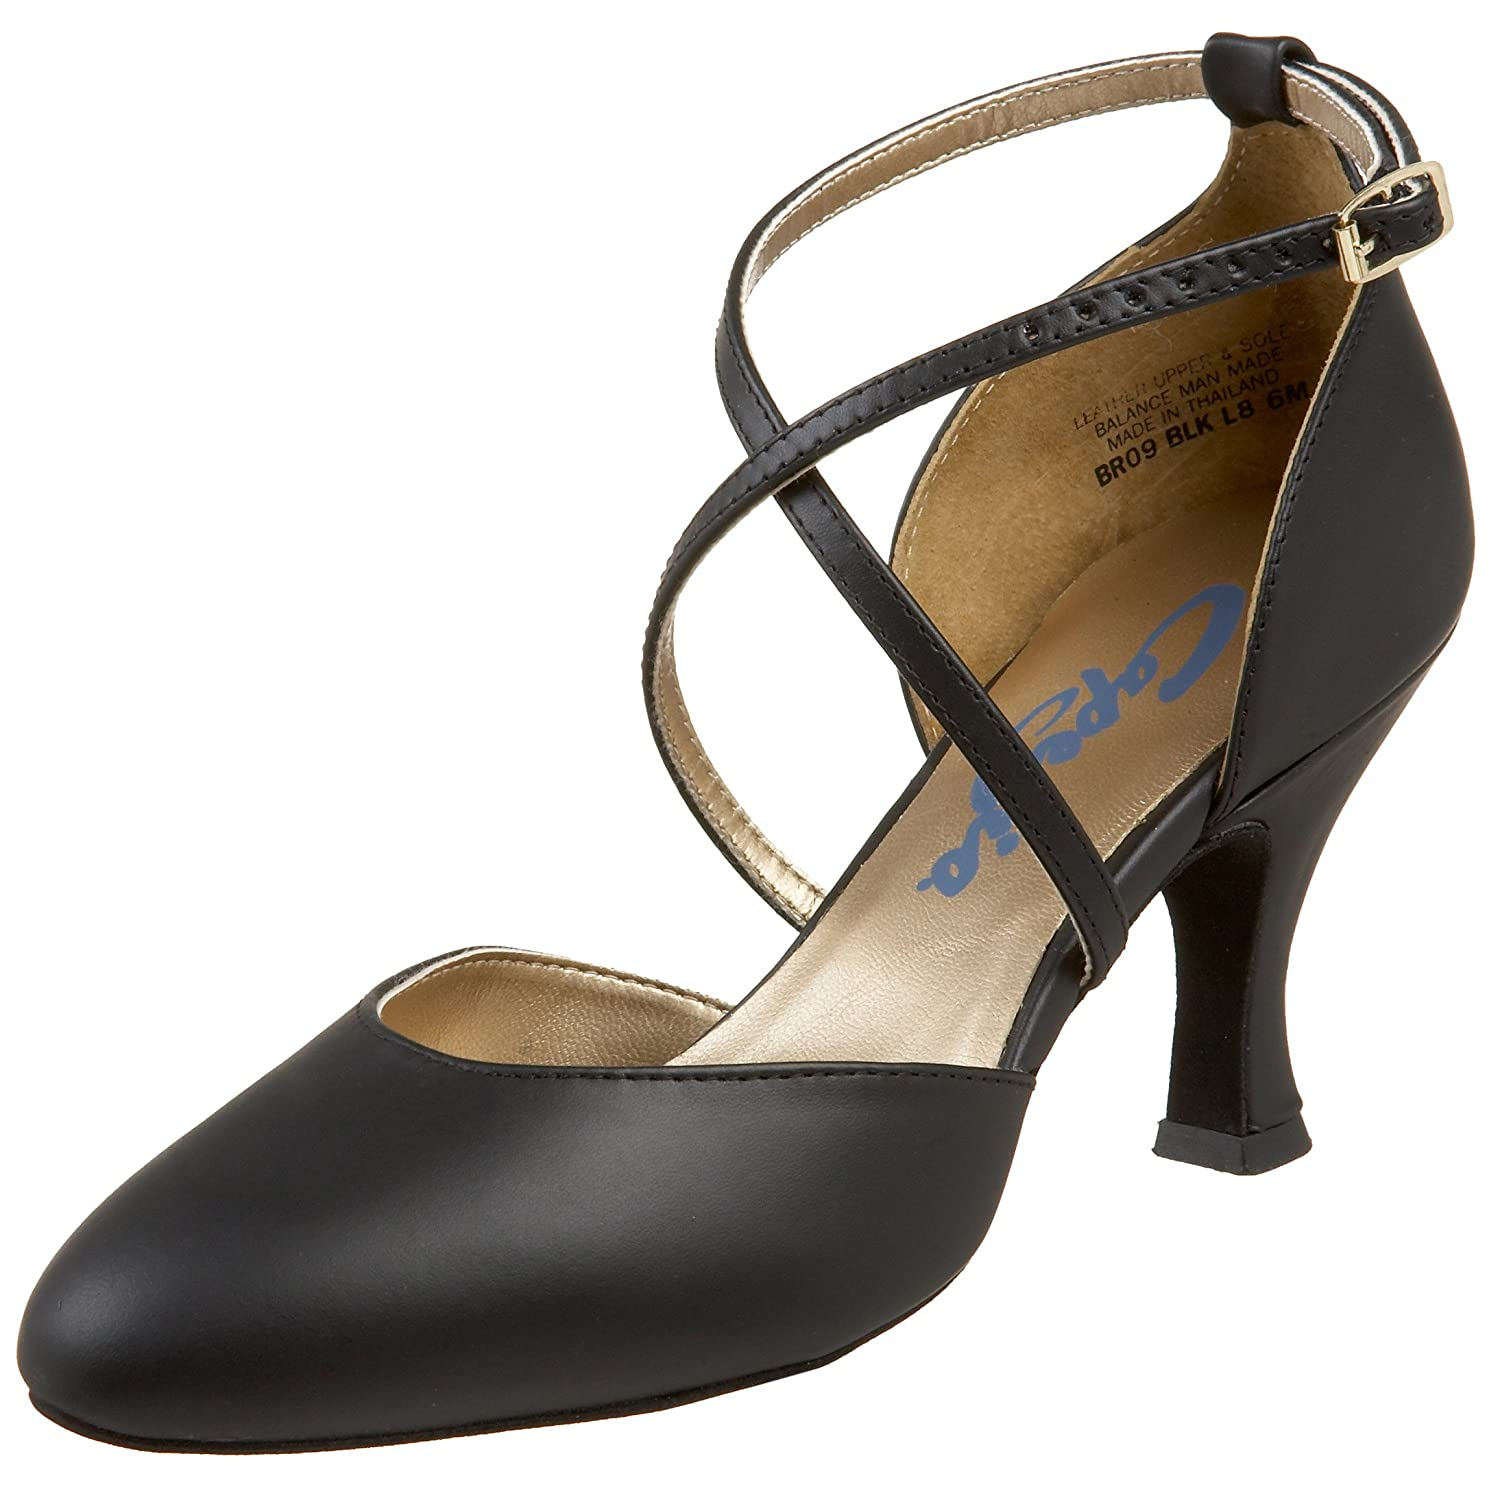 Vintage Style Shoes, Vintage Inspired Shoes Capezio Womens BR09 X-Strap 2.5 Flared Heel Shoe $79.99 AT vintagedancer.com